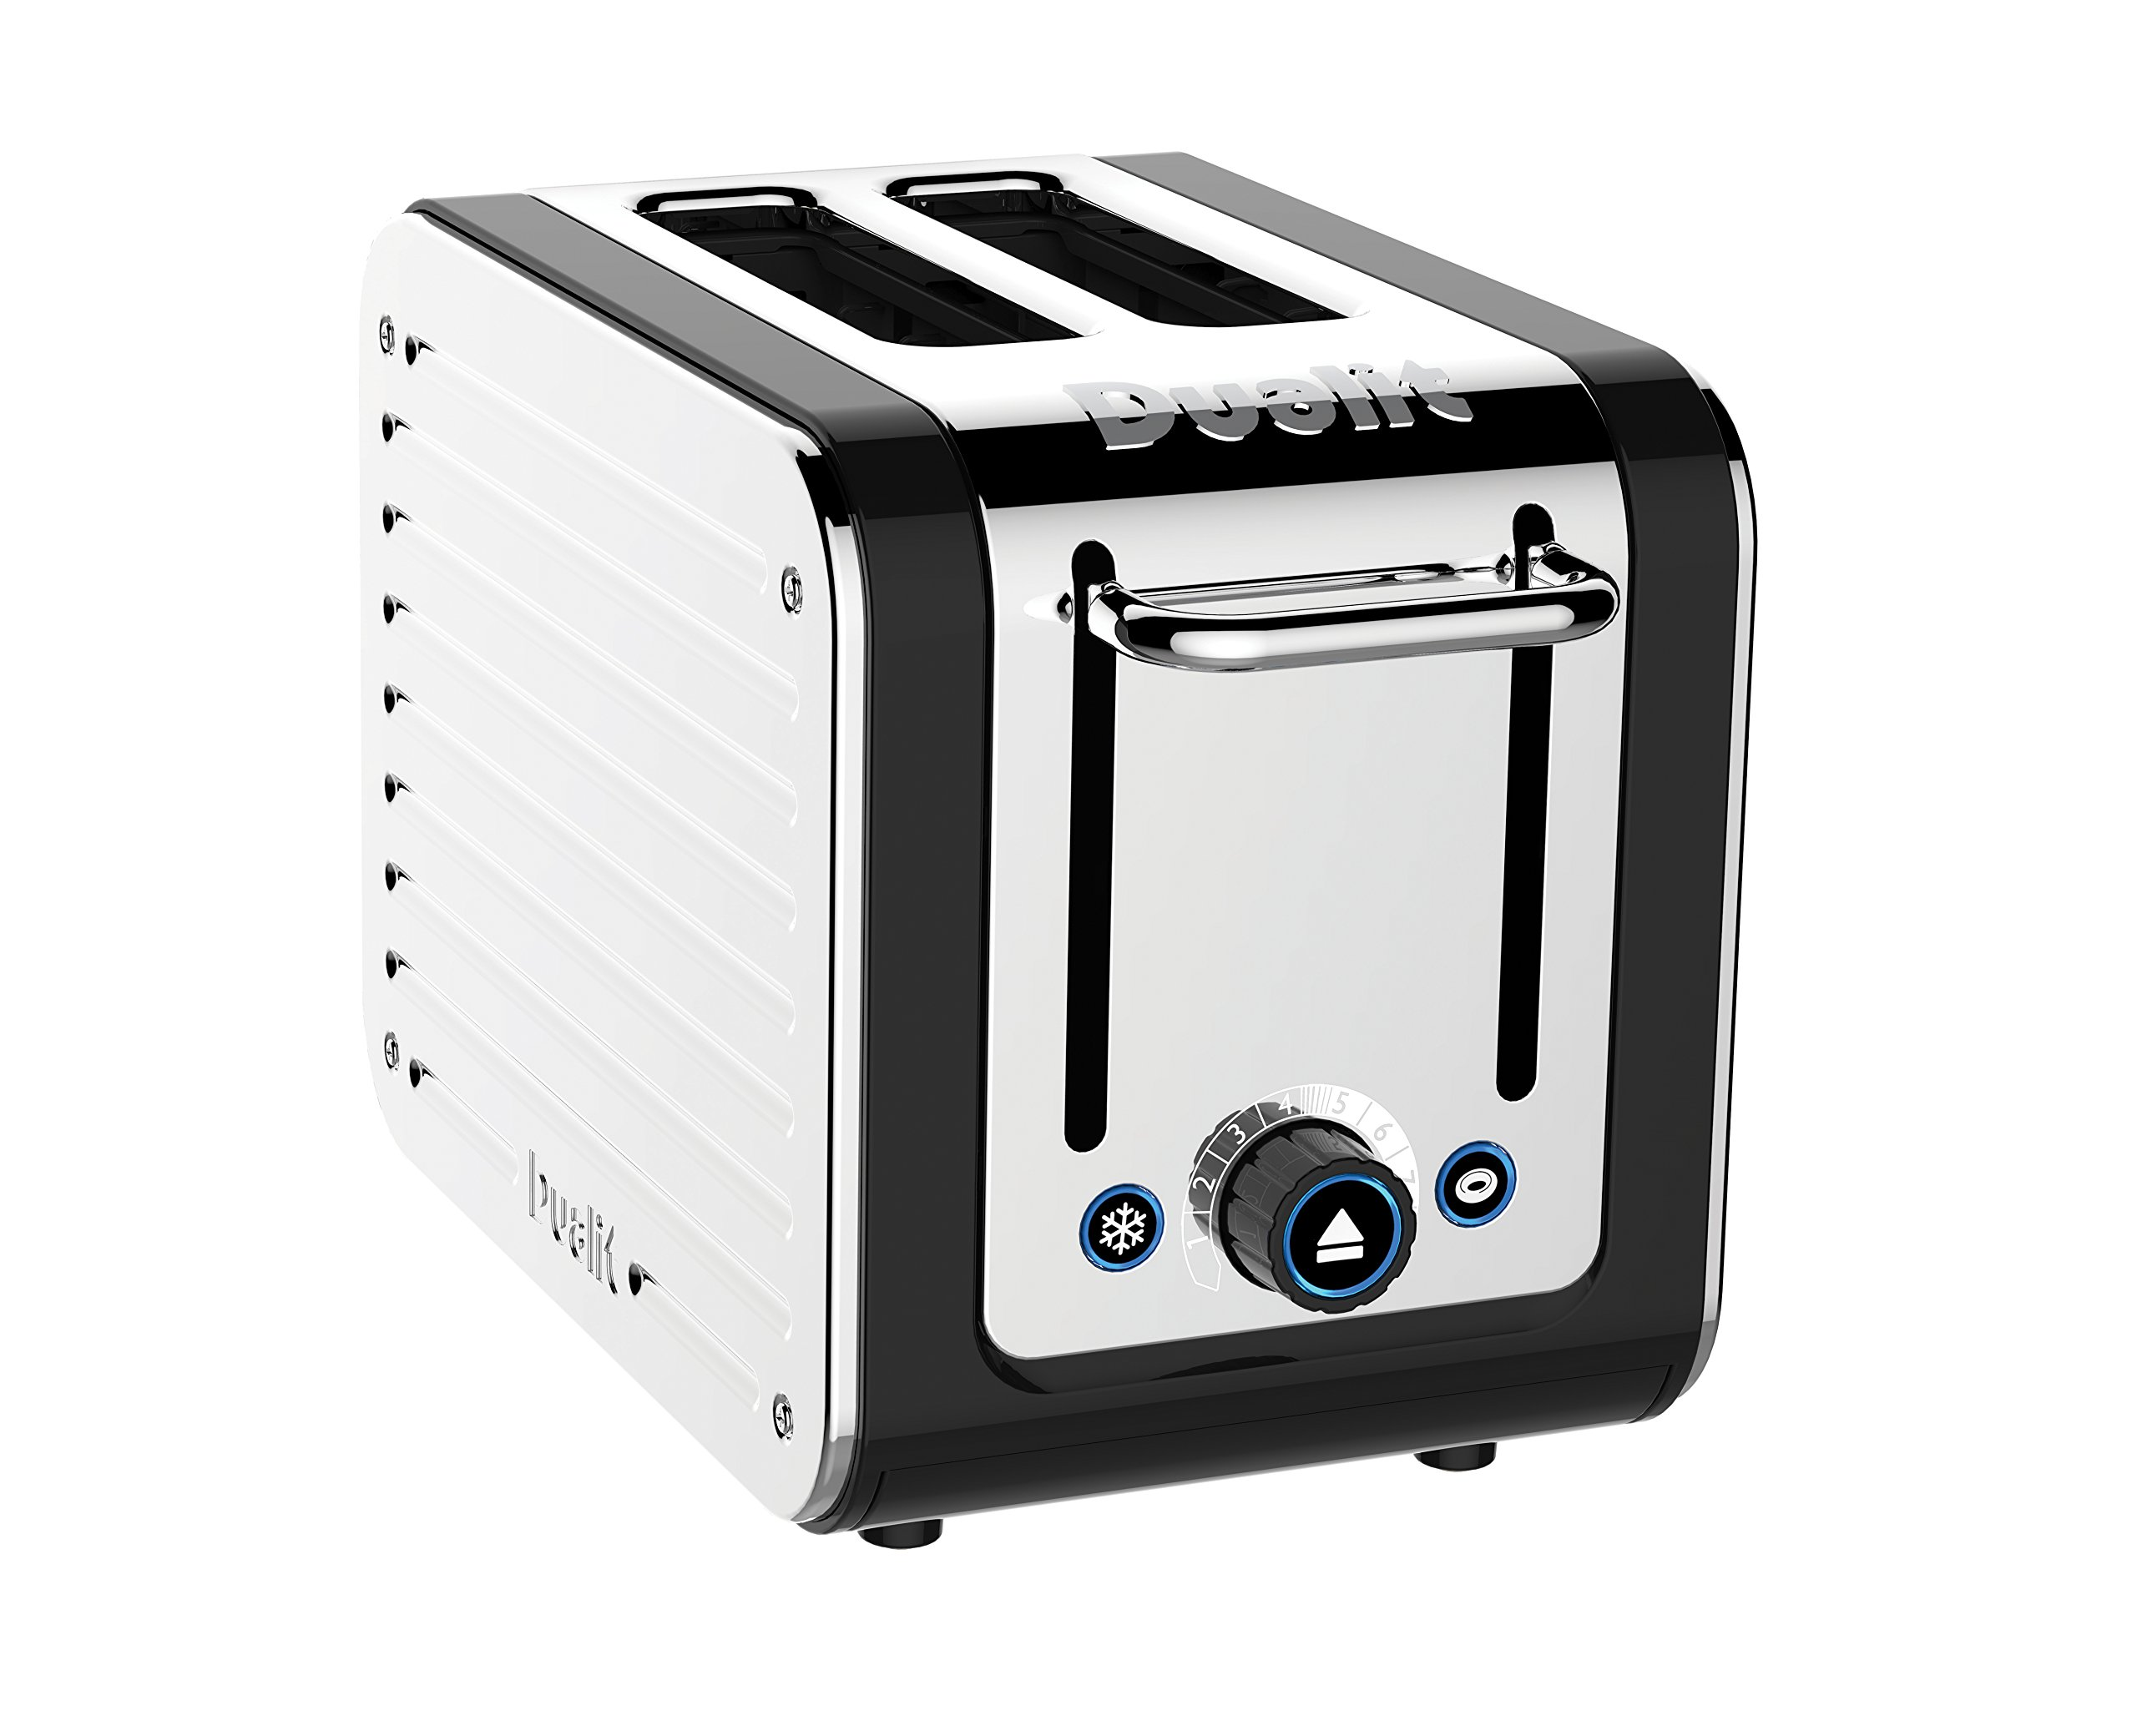 Dualit 26555 2-Slice Design Series Toaster, Black and Steel